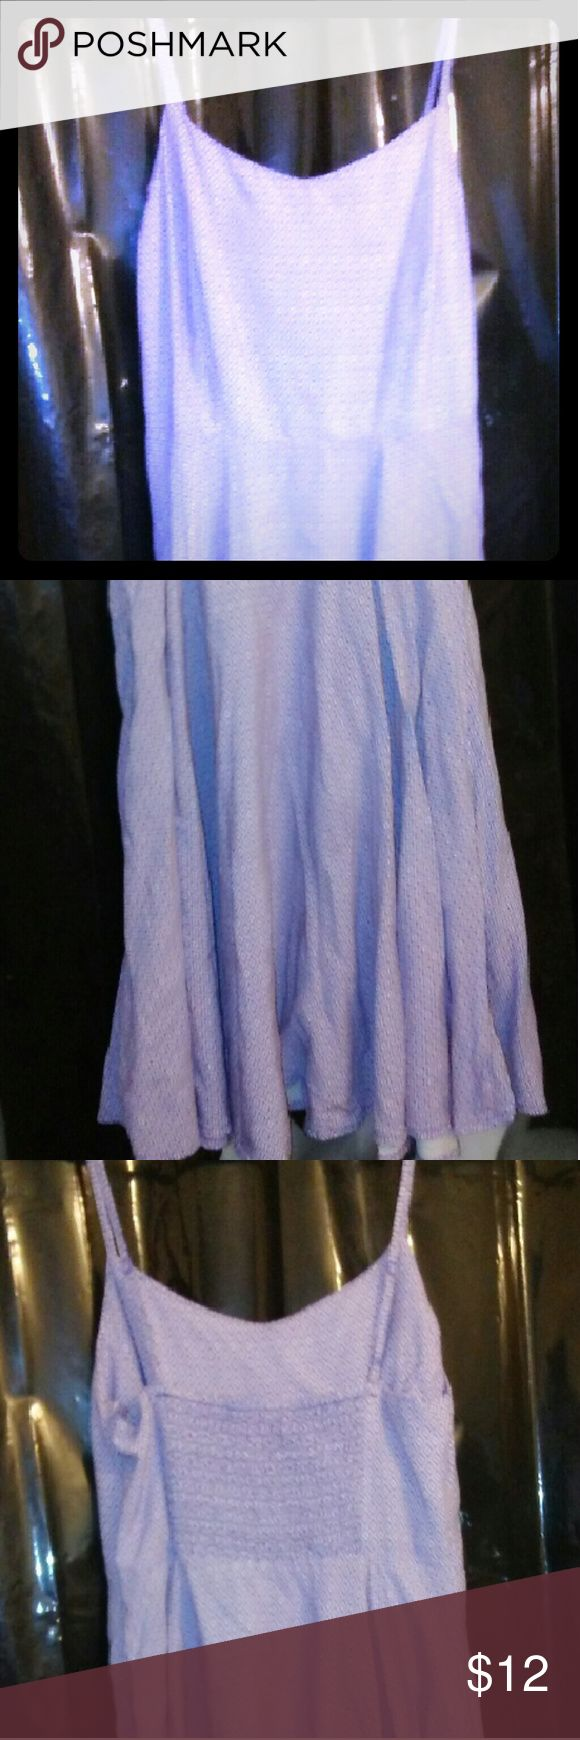 Purple and white Old Navy dress Size XS PETITE, fits more like a XS/S Excellent condition, worn 1x Spaghetti straps are adjustable Zipper opening on one side Rucched center in back Skirt looks like a romper style but its a dress 100% rayon  Beautiful purple and white design Lightweight and cool for Spring and Summer! Old Navy Dresses Mini